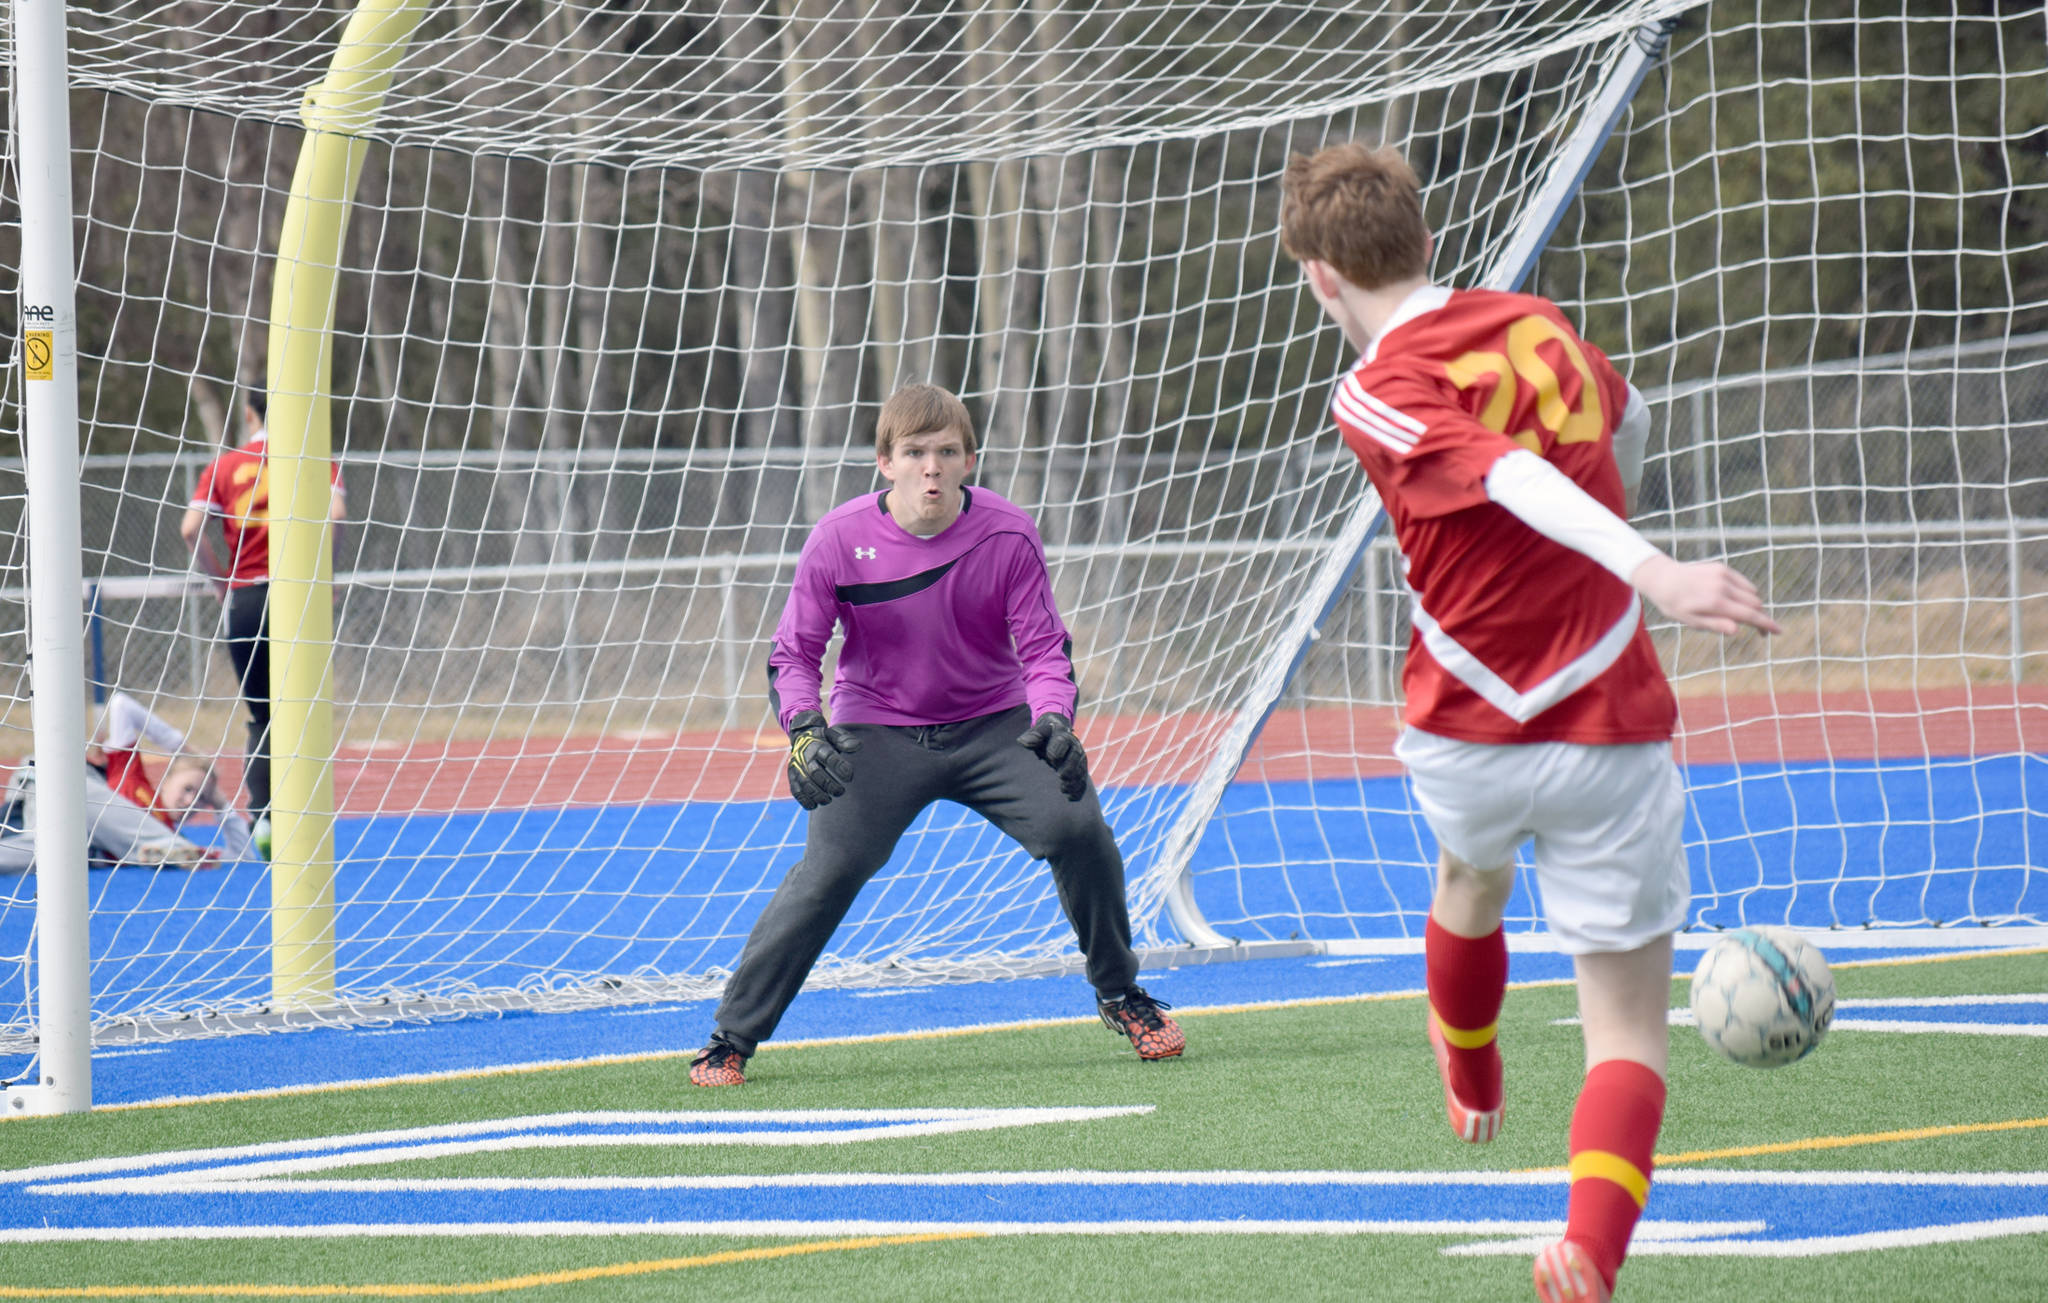 Soldotna goalie Chase Miller defends a cross in front of his goal by West Valley's Seth Thomas on Friday, April 28, 2017, at Soldotna High School. (Photo by Jeff Helminiak/Peninsula Clarion)